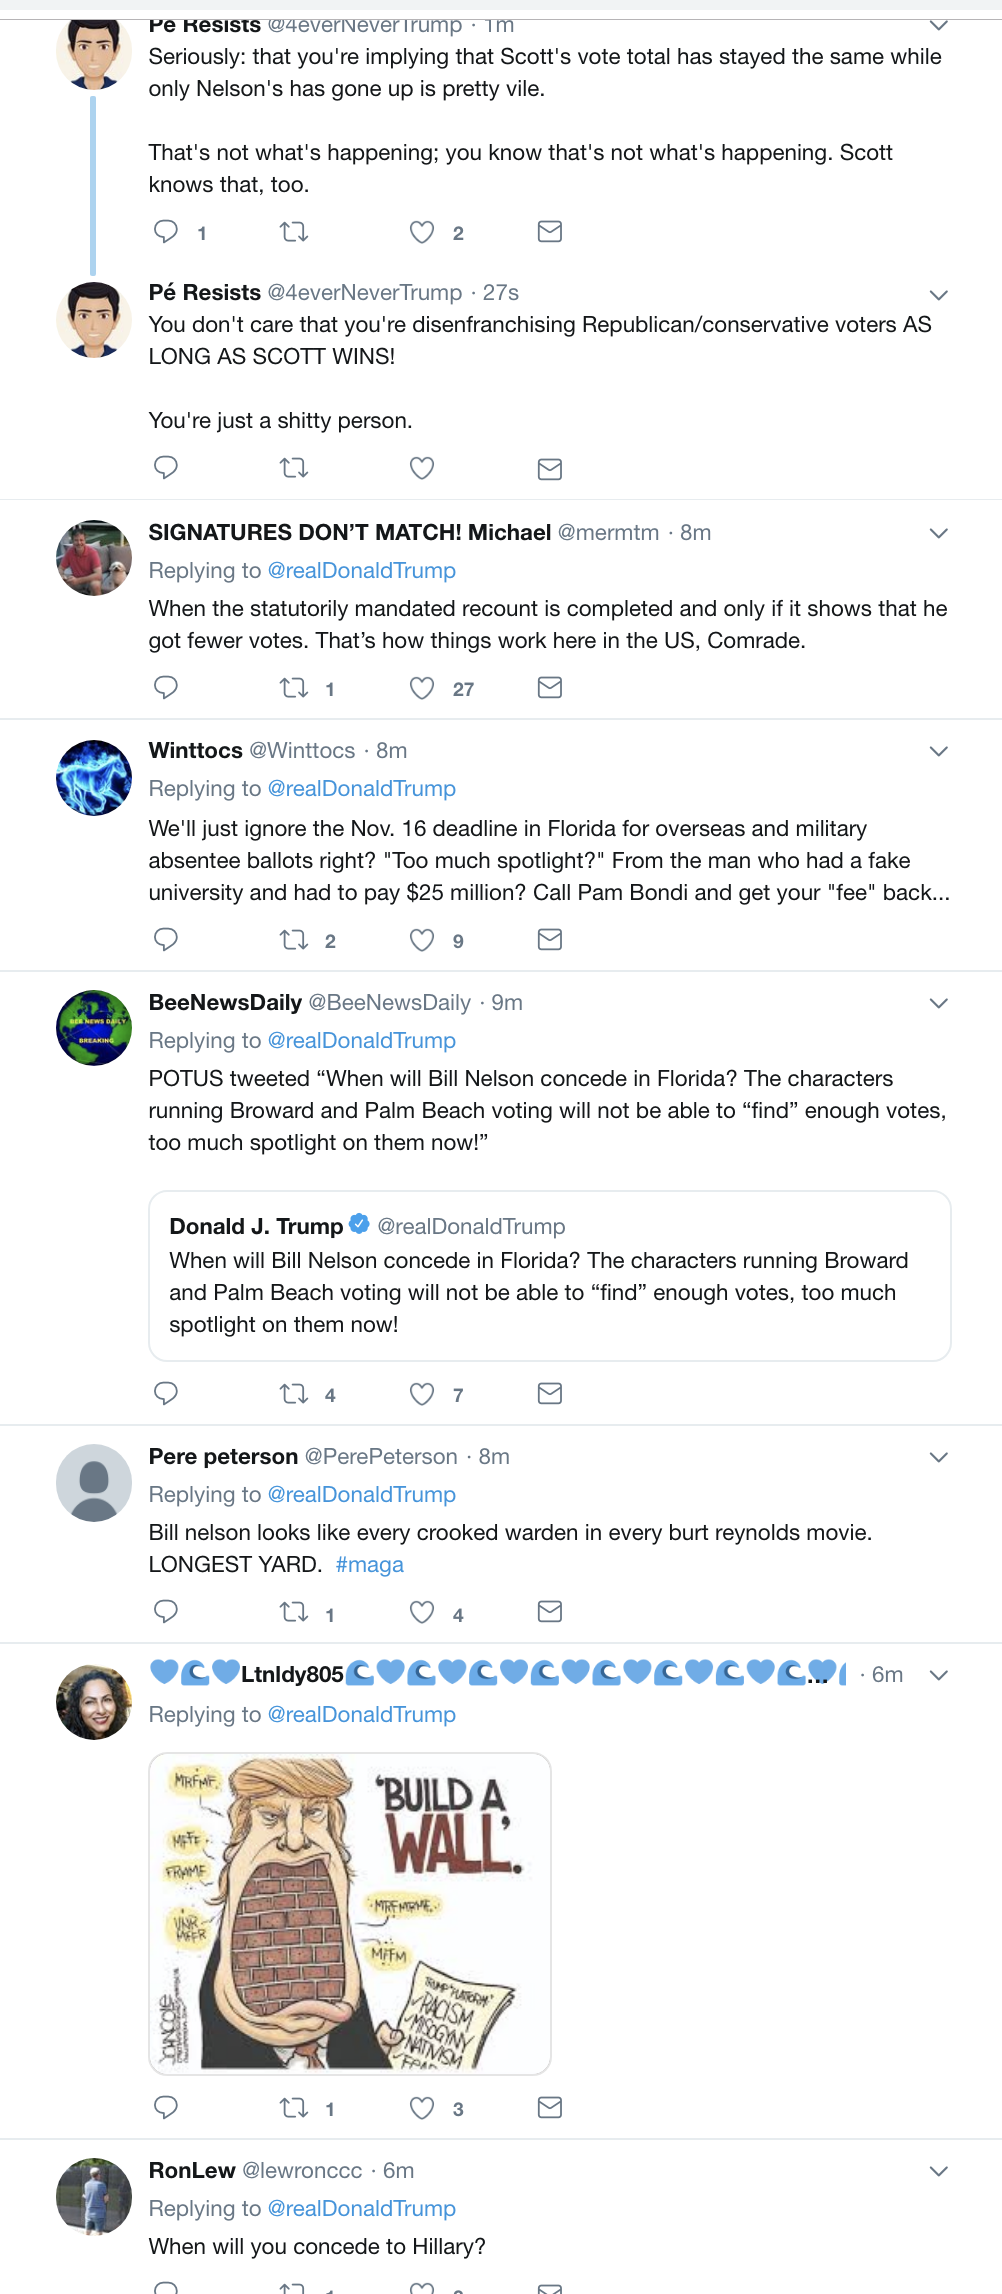 Screen-Shot-2018-11-13-at-10.45.25-AM Trump Tweets About Florida Recount In Desperate Attempt To Sway Outcome Corruption Crime Donald Trump Election 2018 Election 2020 Politics Top Stories